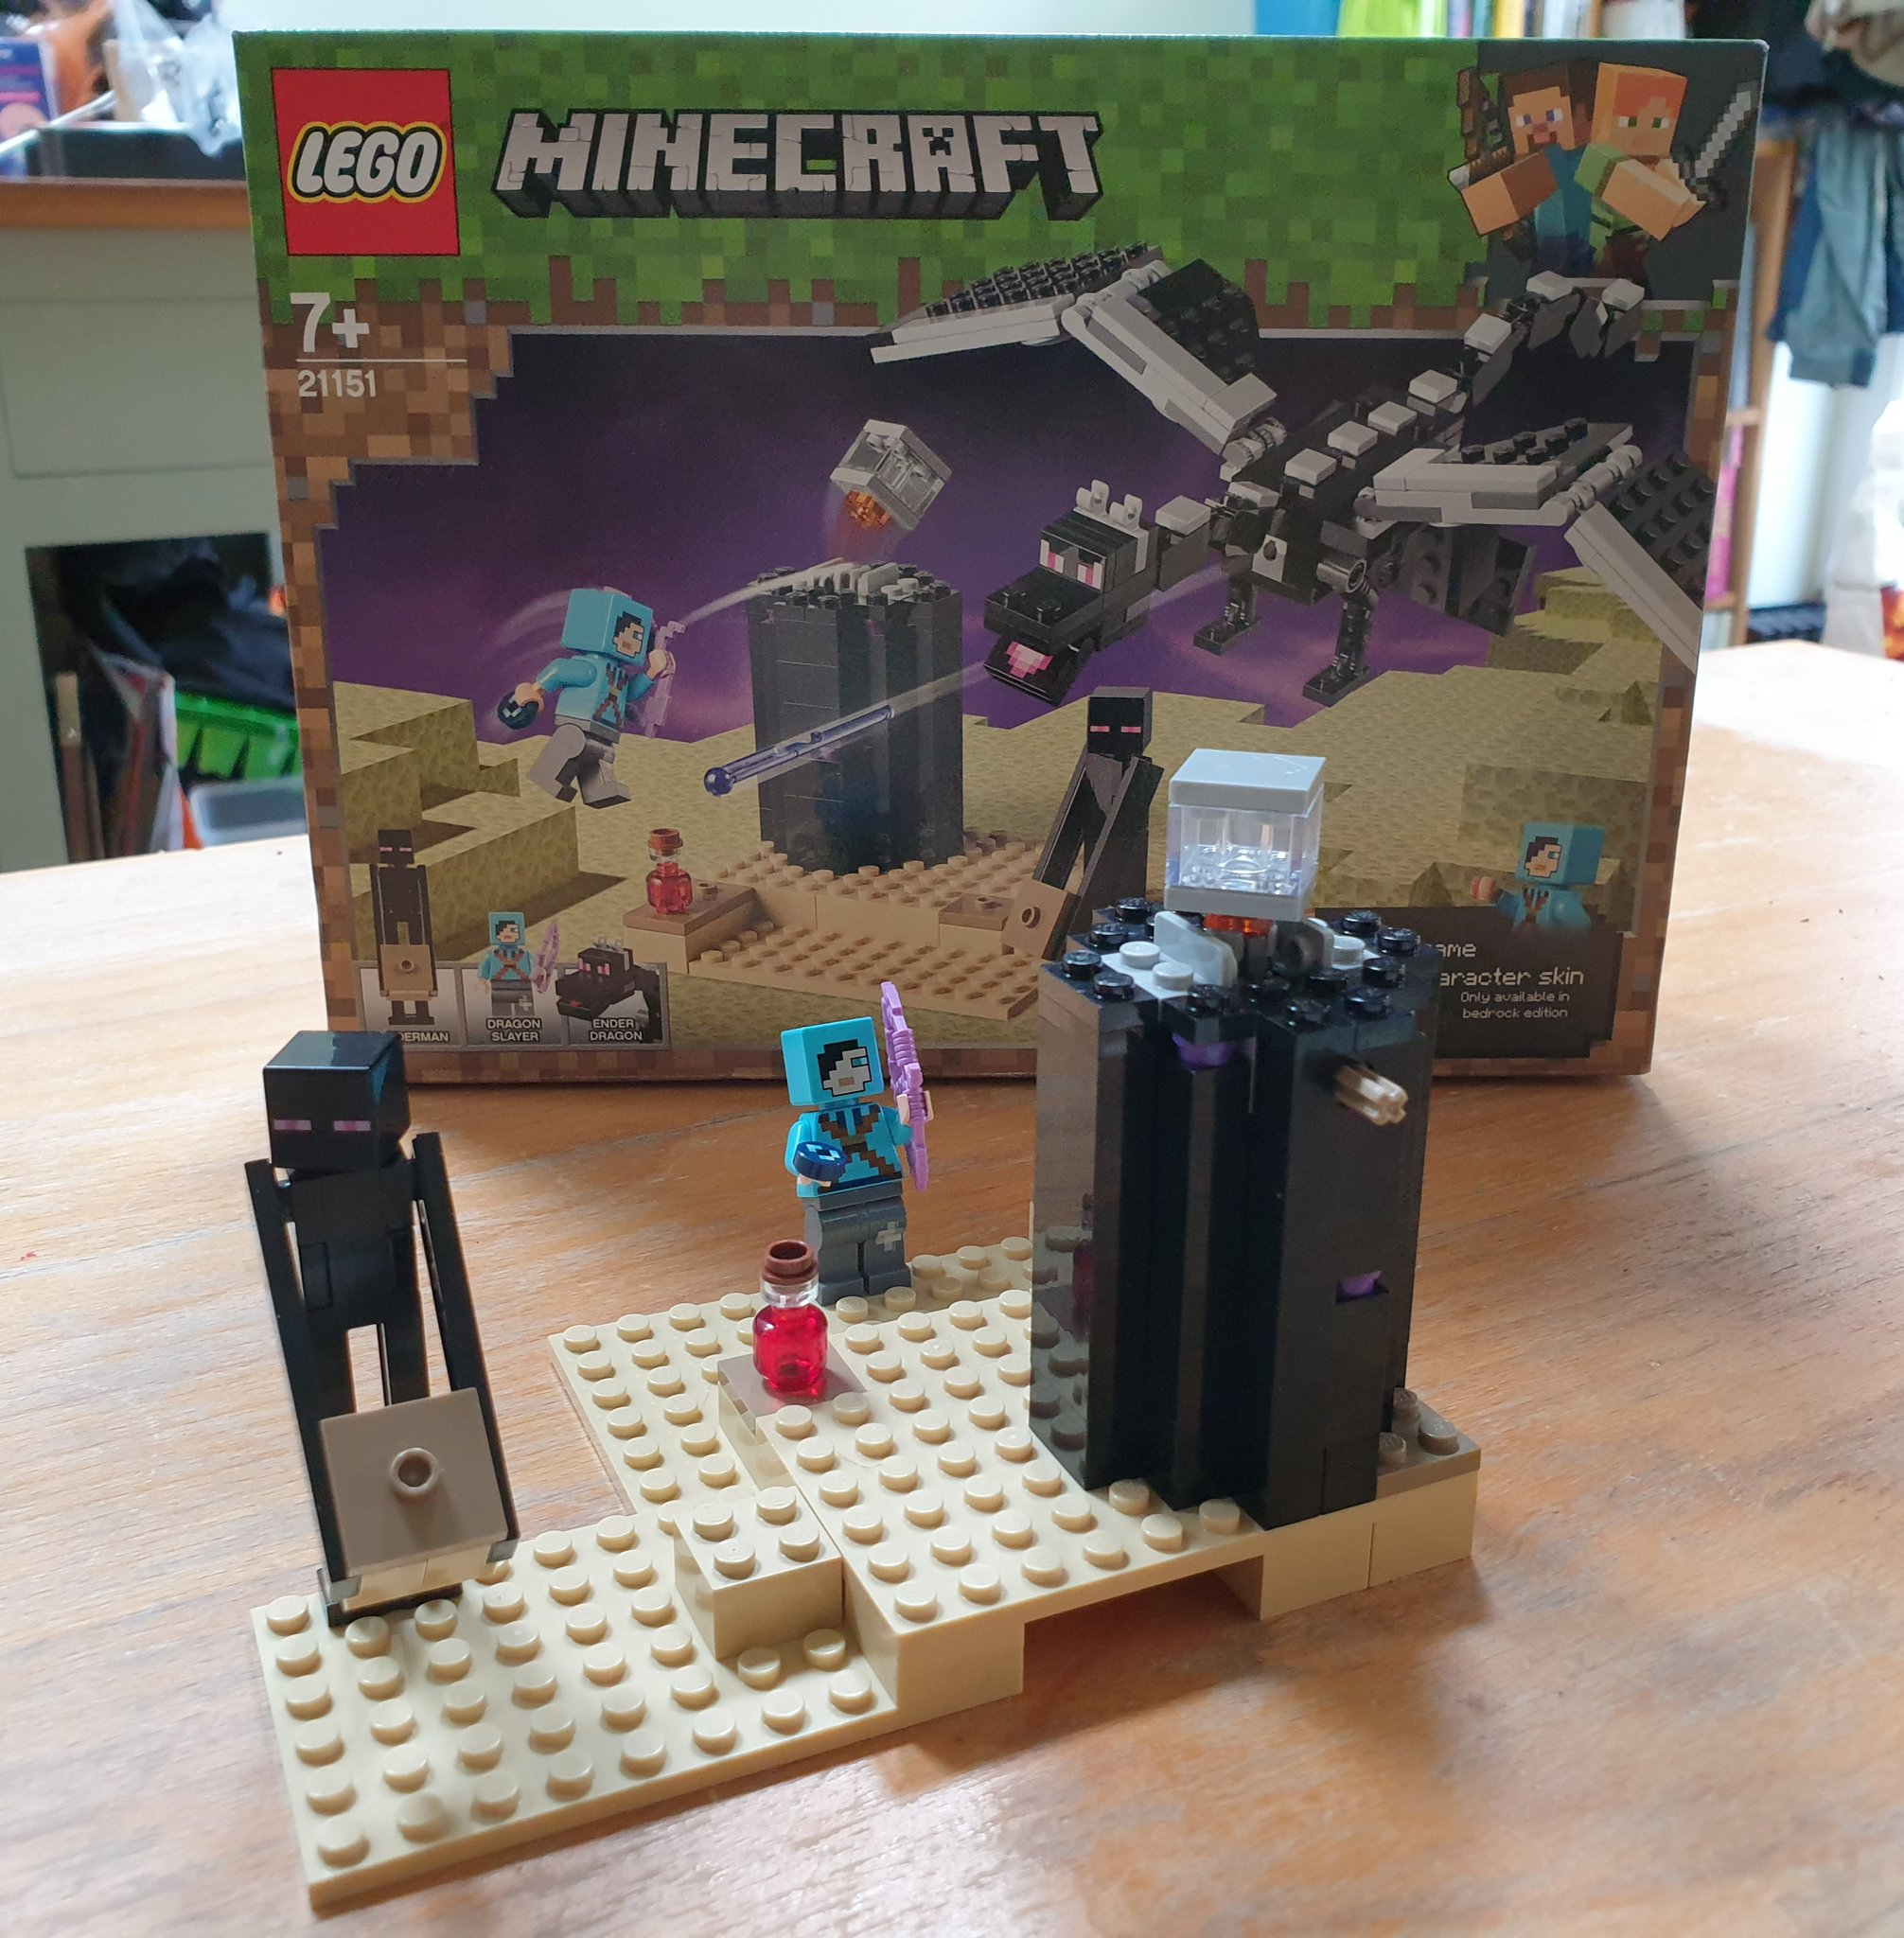 Twitter À¤ªà¤° David K Smith First Part Of Our Lego Minecraft The End Set Is Built Dragon Slayer Enderman And Obsidian Tower Apparently So The 7yo Tells Me Next Time The